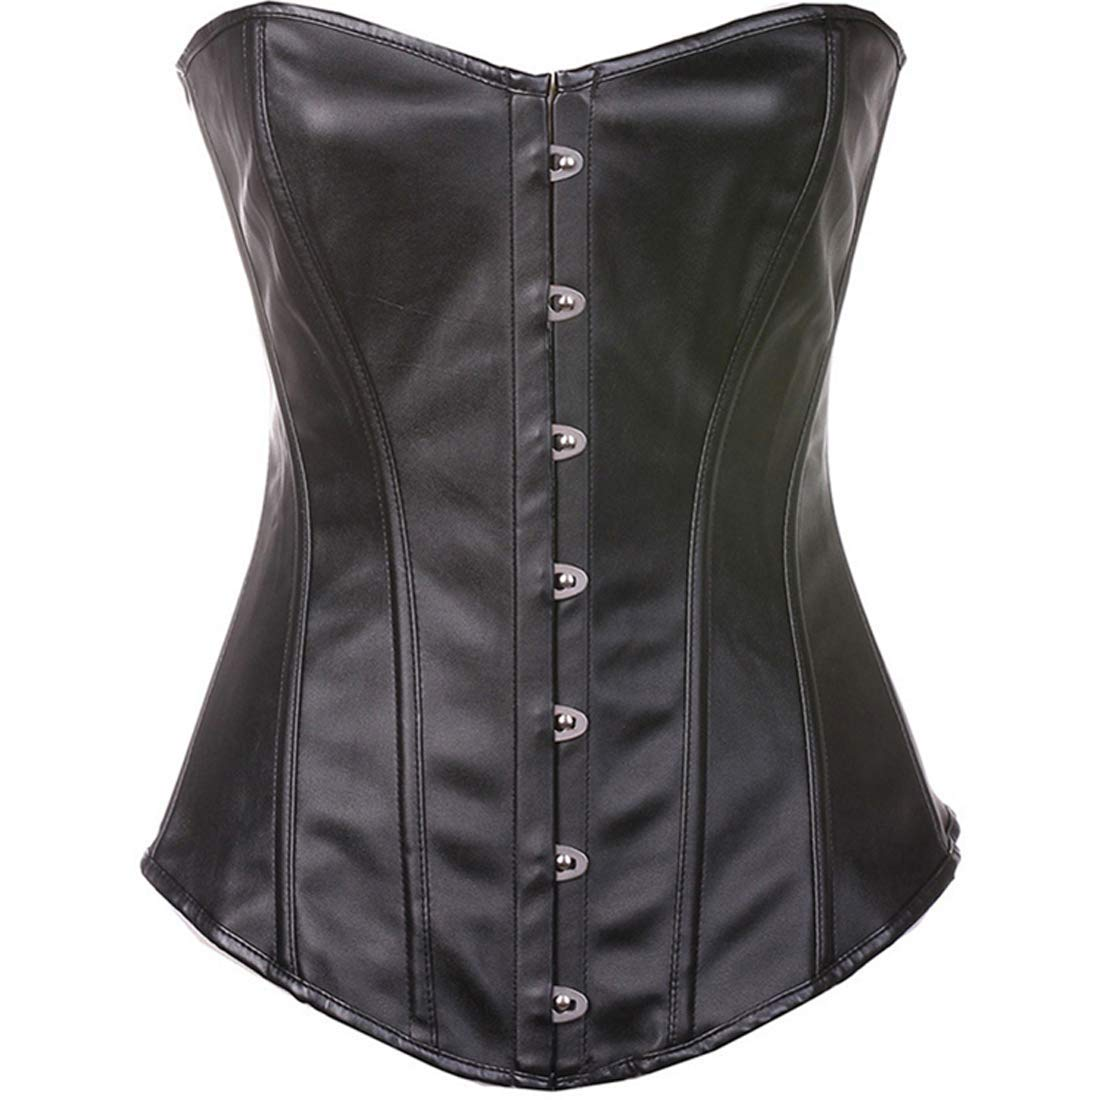 08efc5ada4b Get Quotations · Keldorng Womens Steampunk Gothic Faux Leather Zipper Front Corset  Steel Boned Costume Plus Size Corset